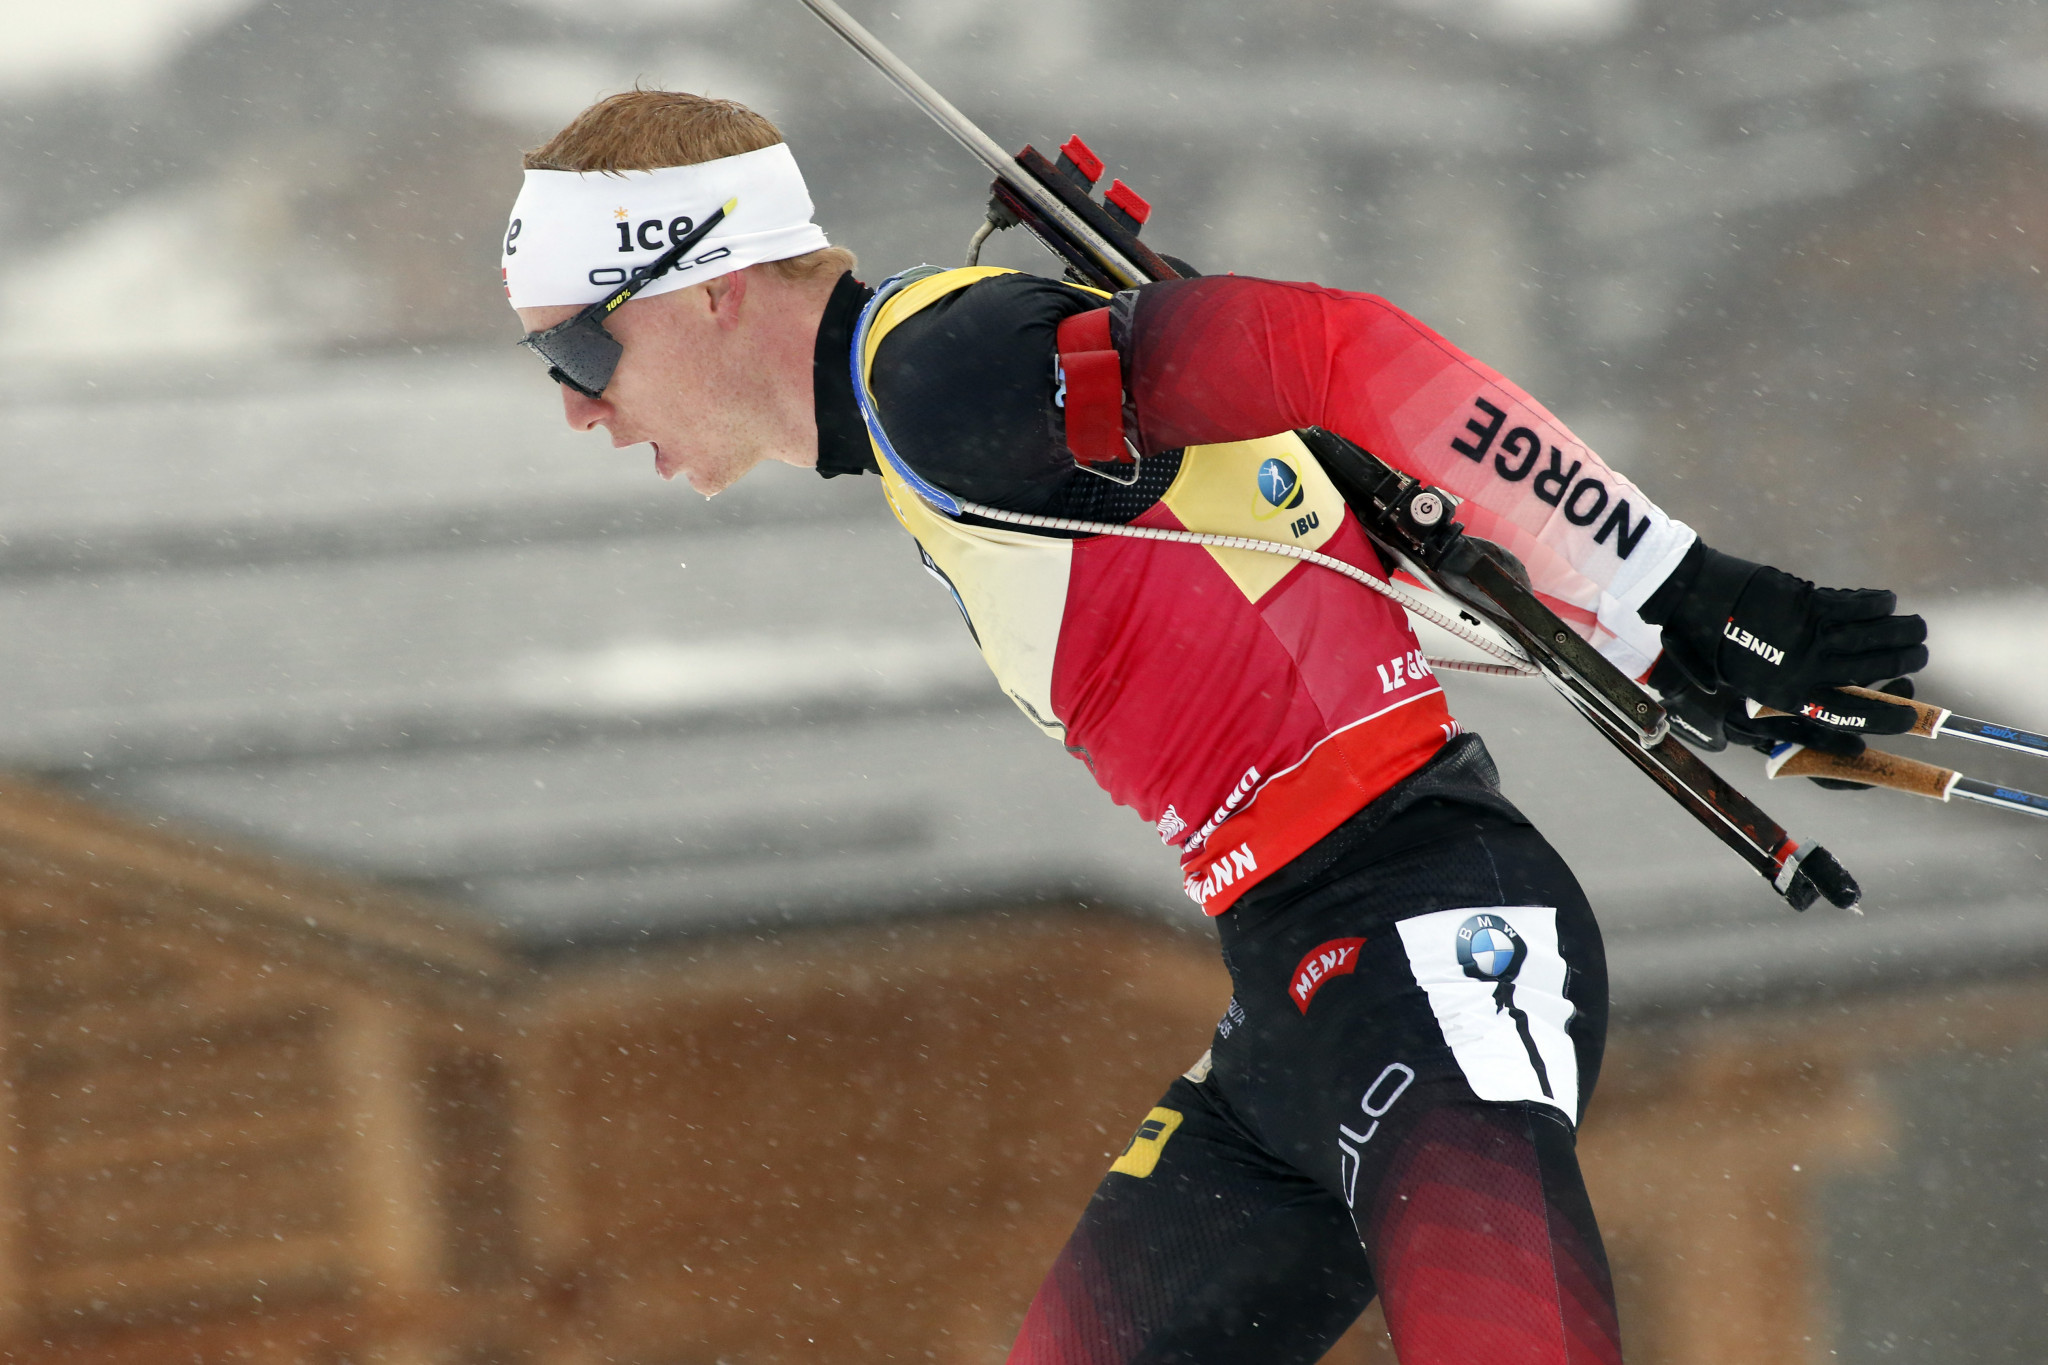 Bø wins men's 20km individual event on return to IBU World Cup action